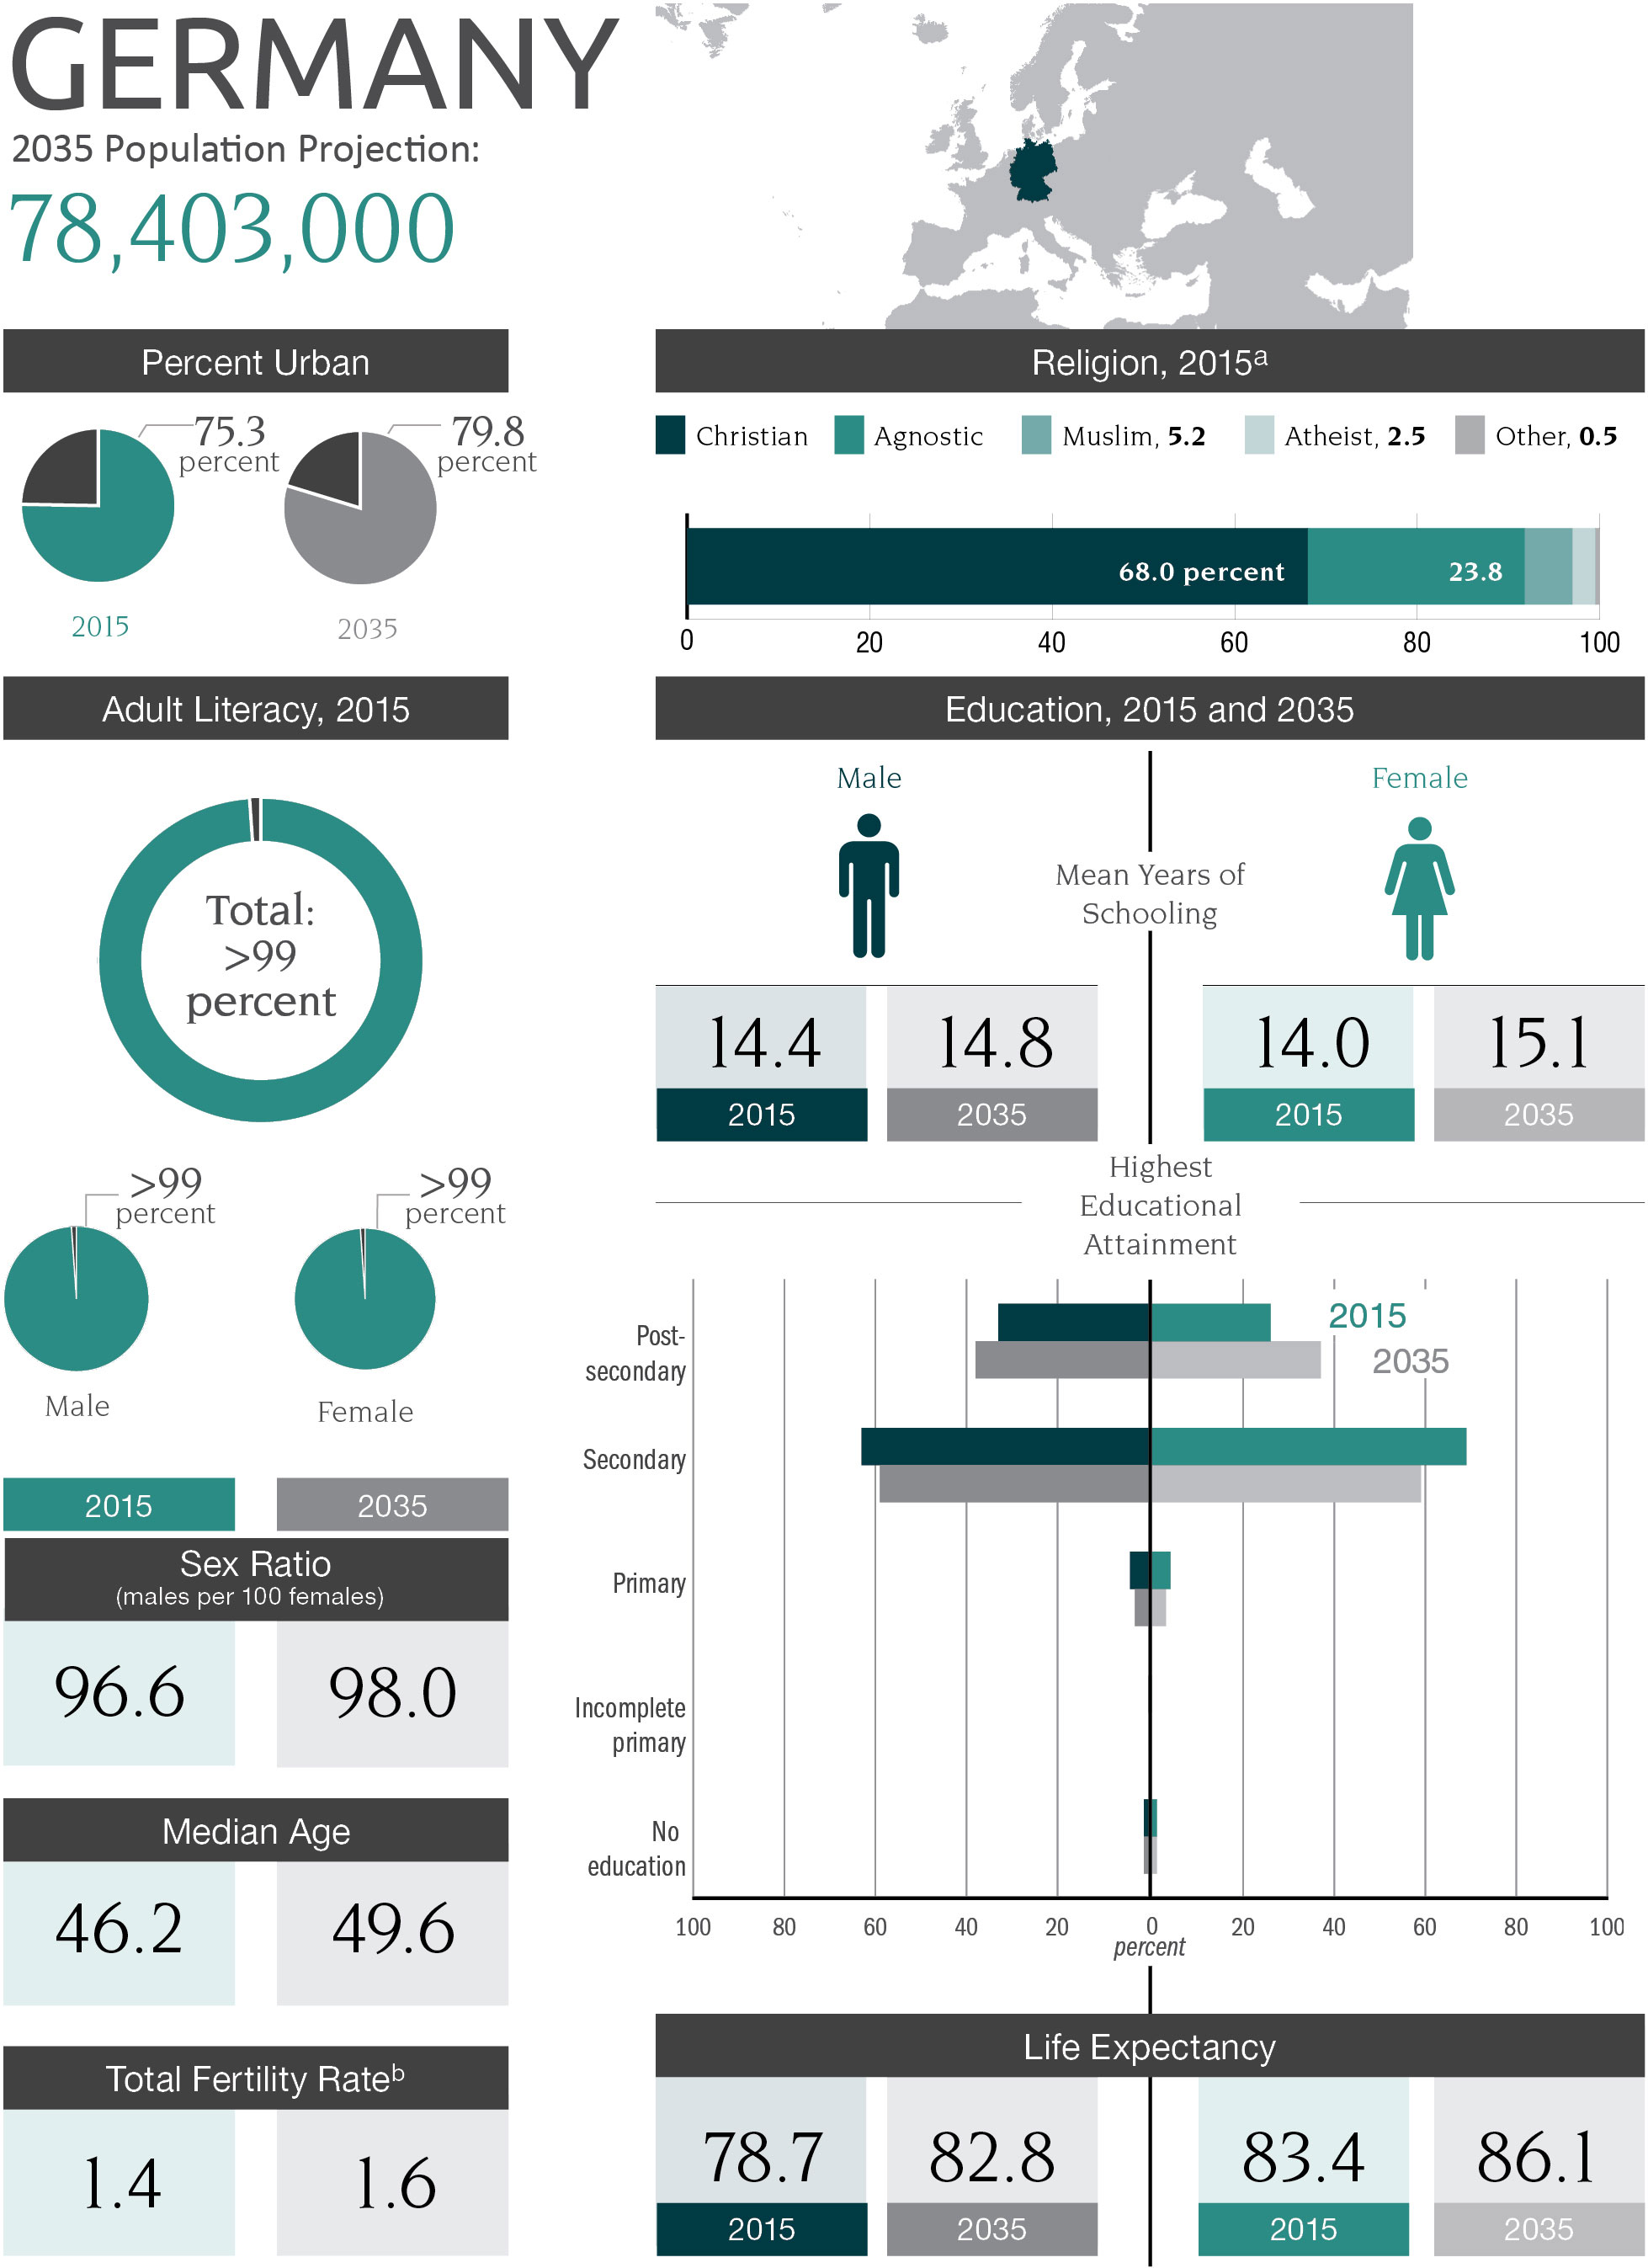 Infographic - Germany's Population Projection of 78,403,000 in 2035